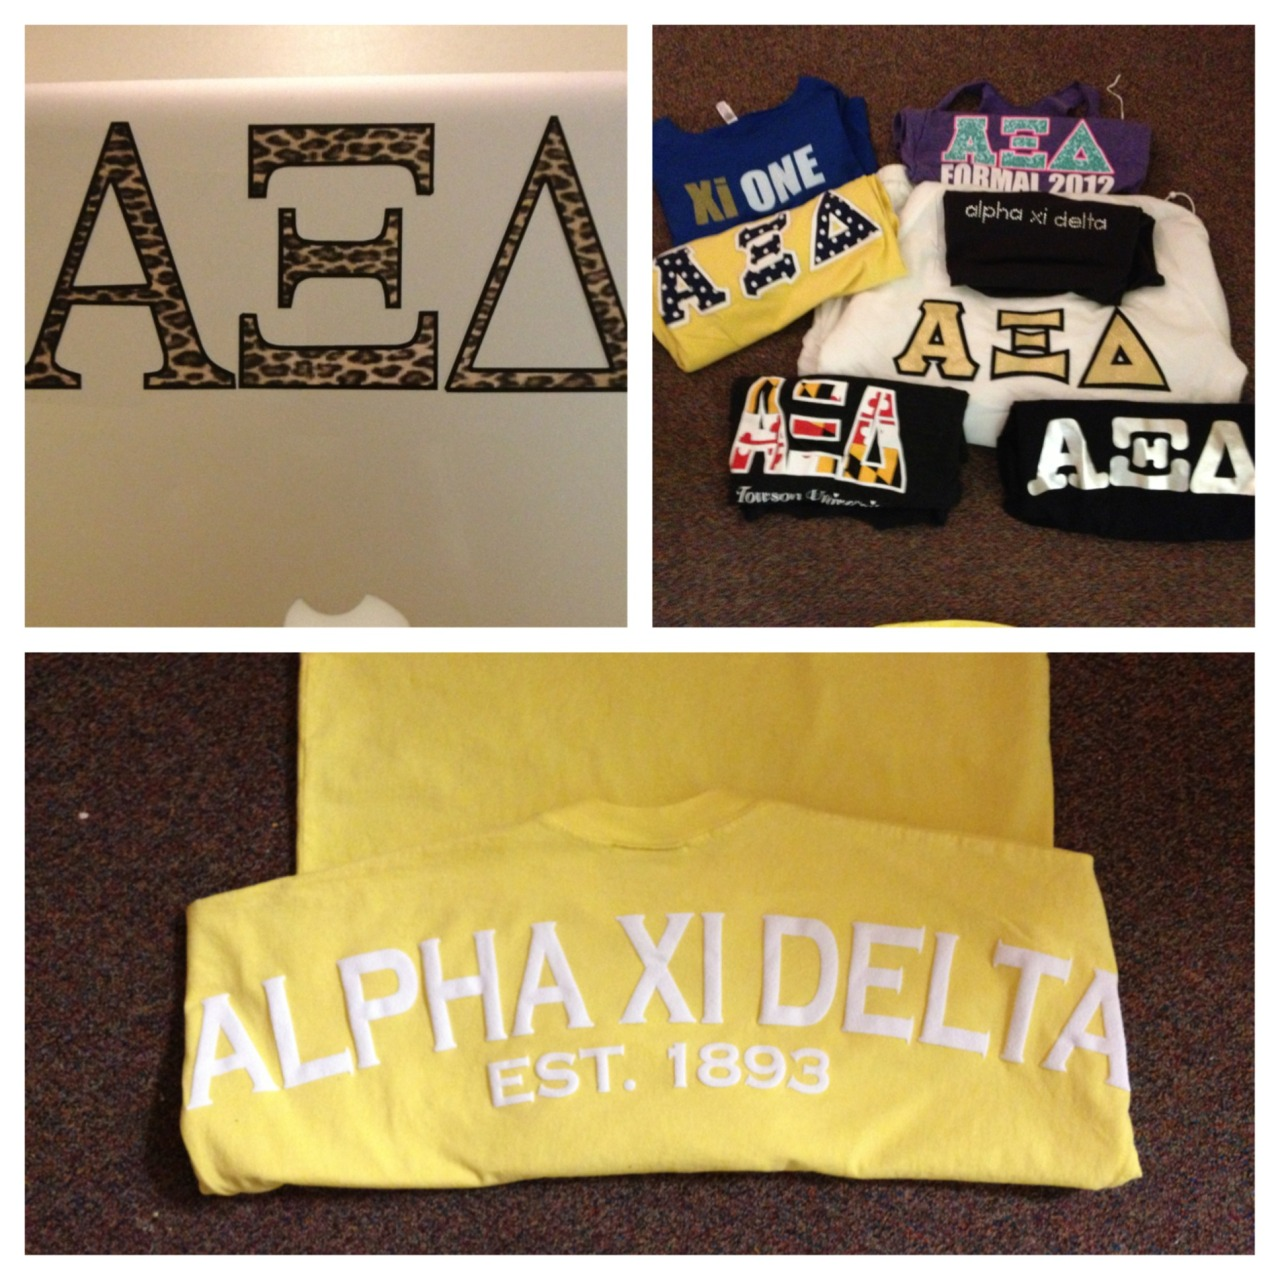 Towson University Alpha Xi Delta Theta Delta Chapter's new stickers, spirit jerseys, and senior pass-downs! submitted by: l0ve-and-memories